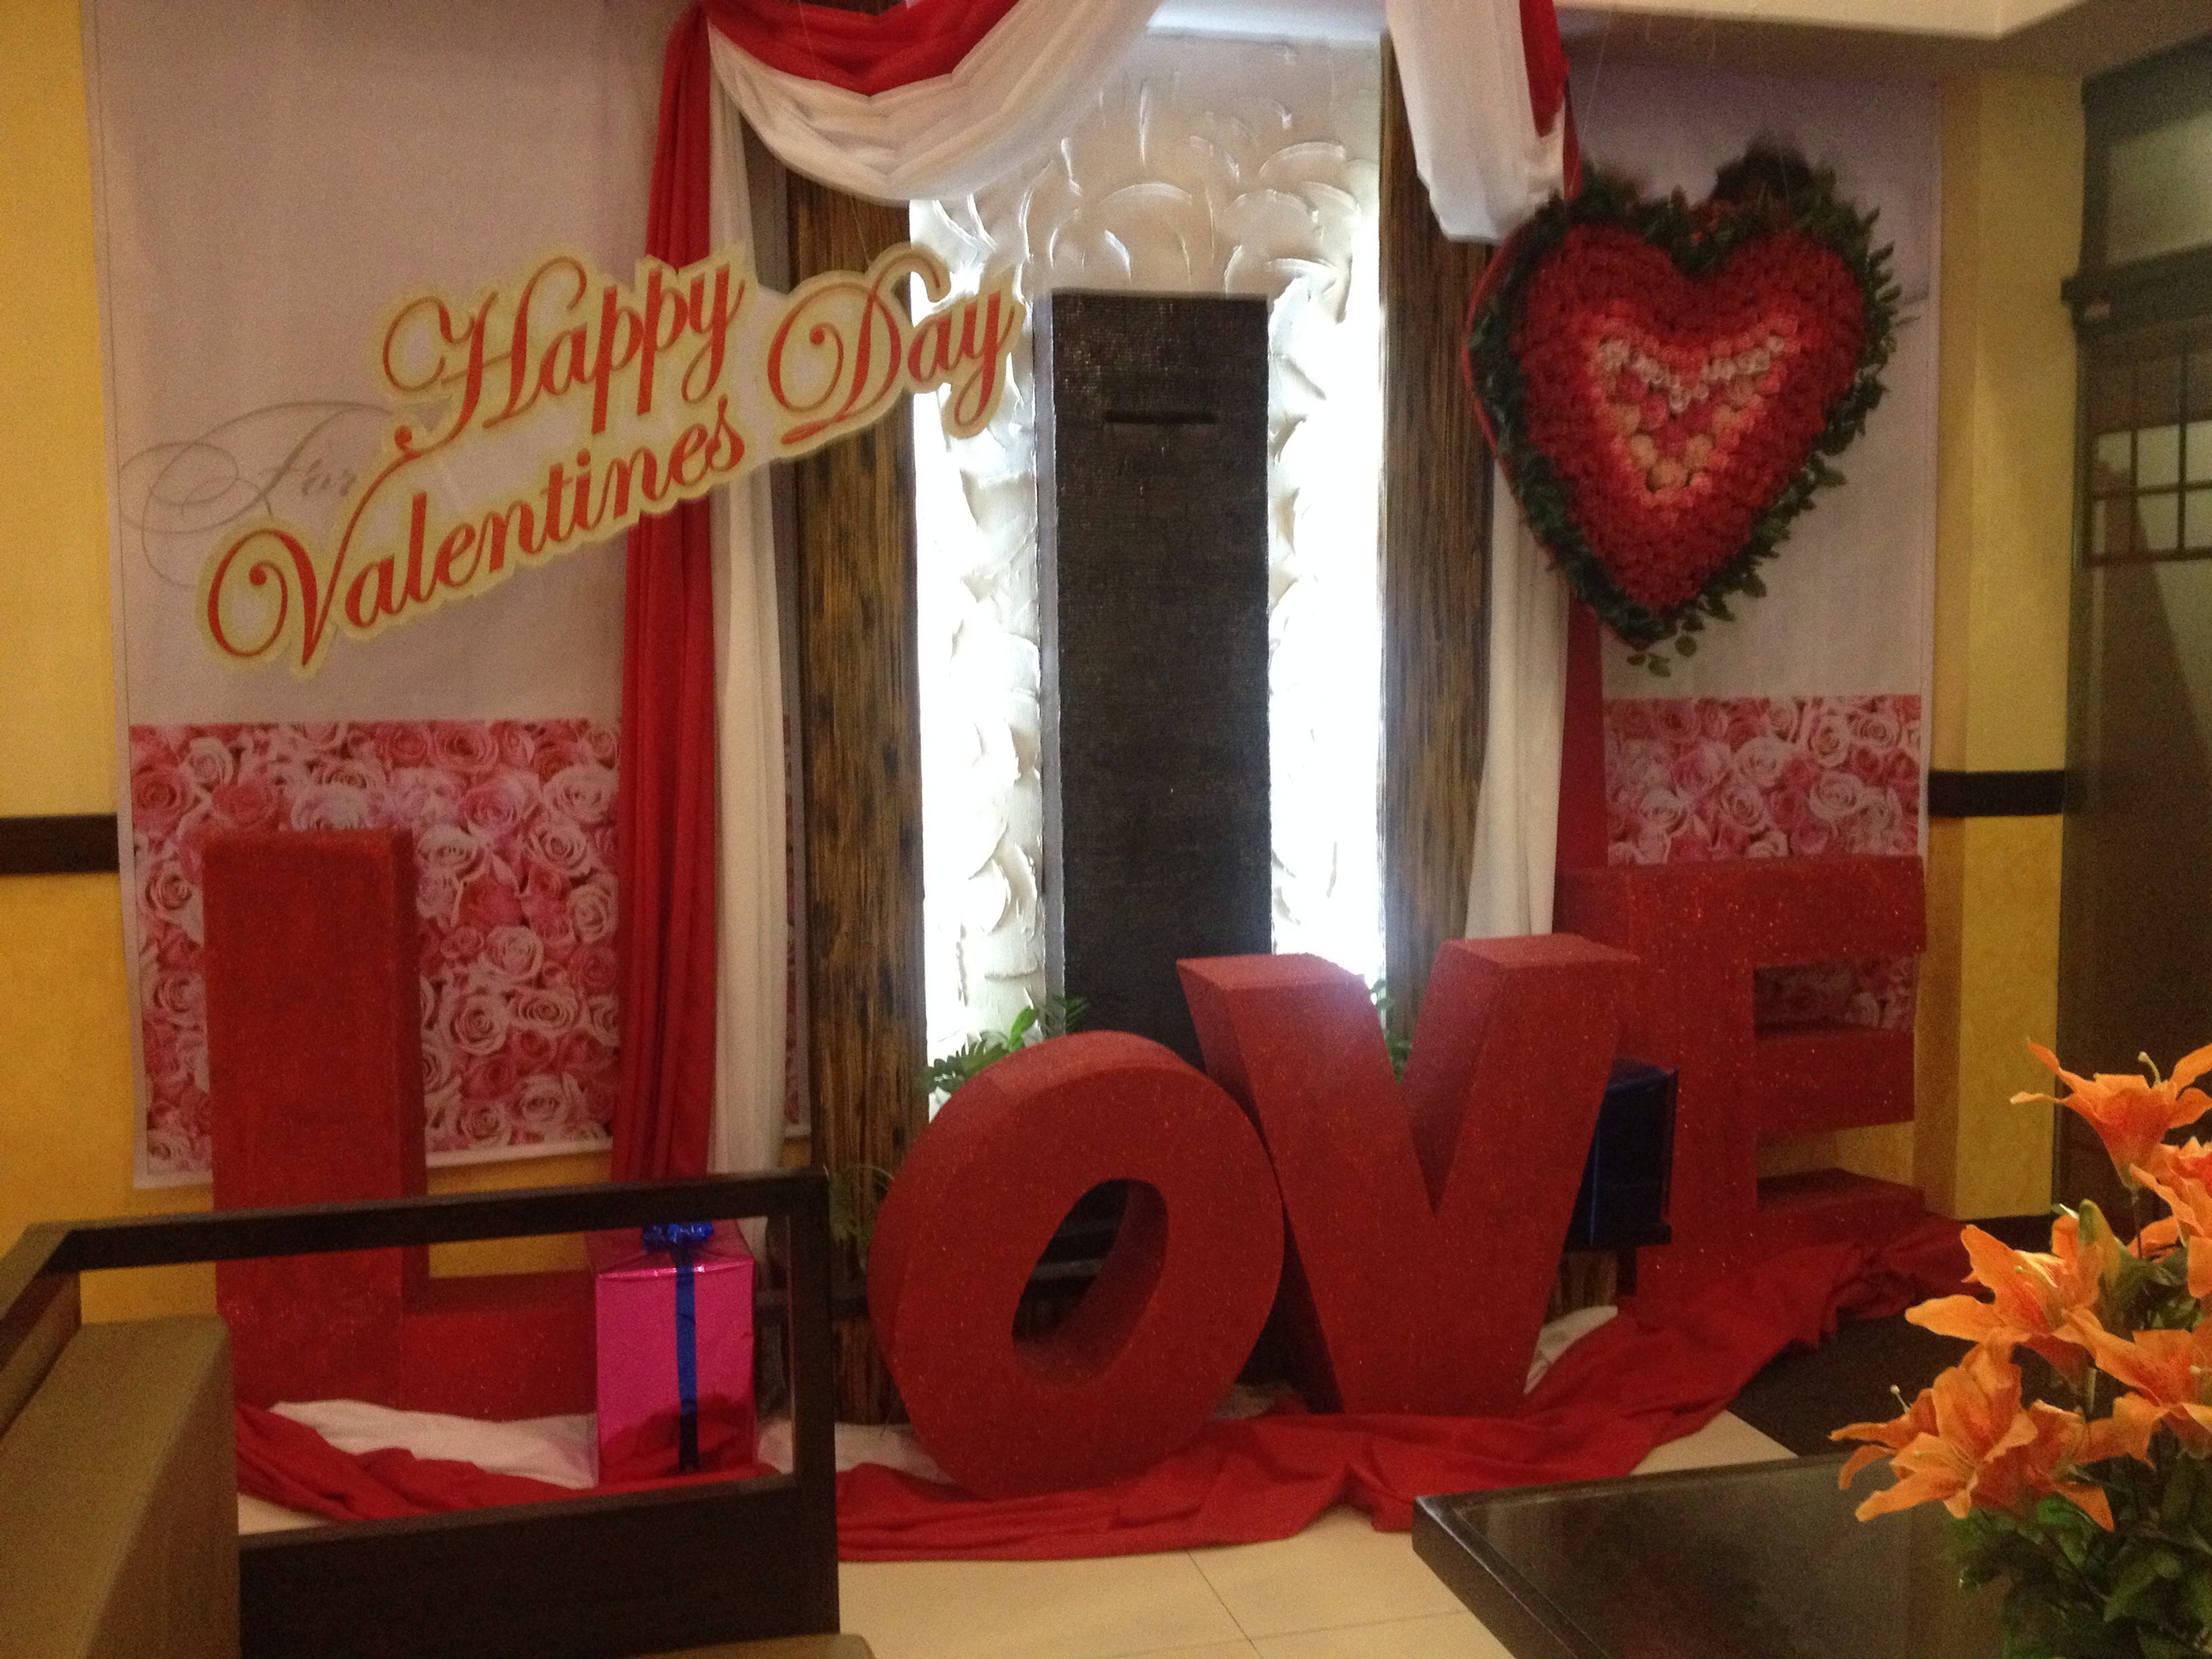 I think it's going to be a busy Valentines Day for the Monumento area hotels